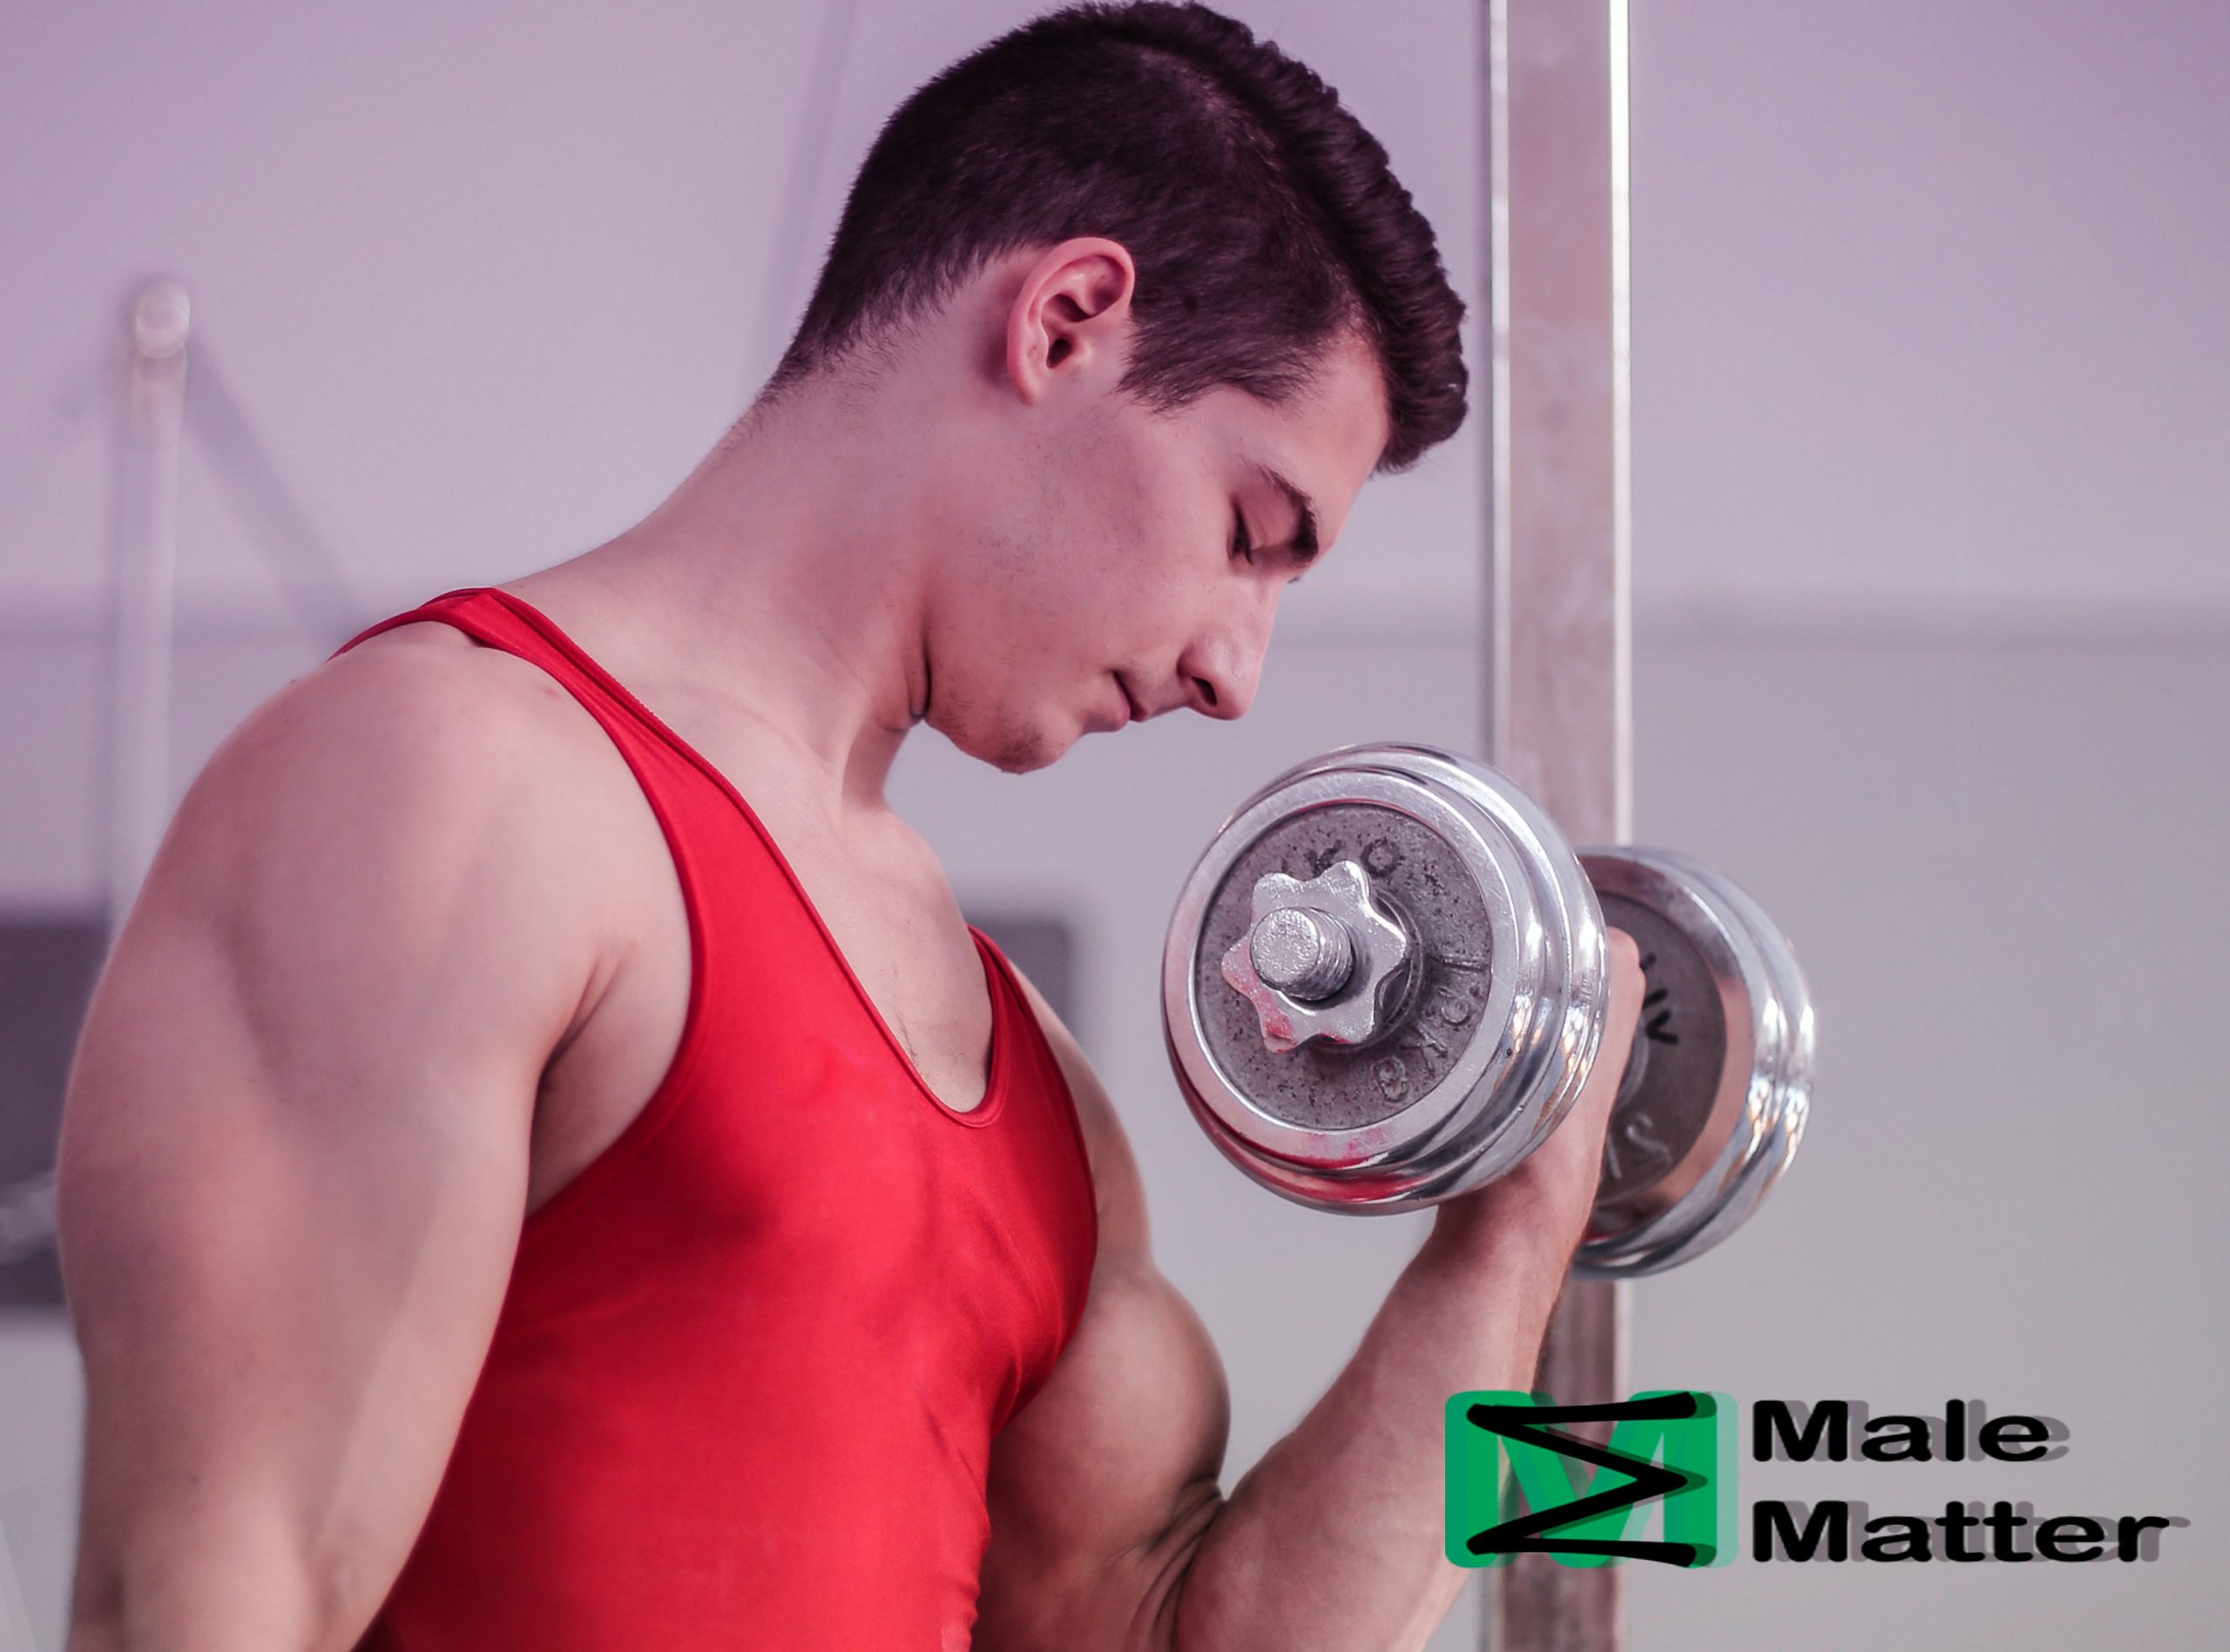 fitness-blockage-overcome-lift-dumbbell-muscle-malematter